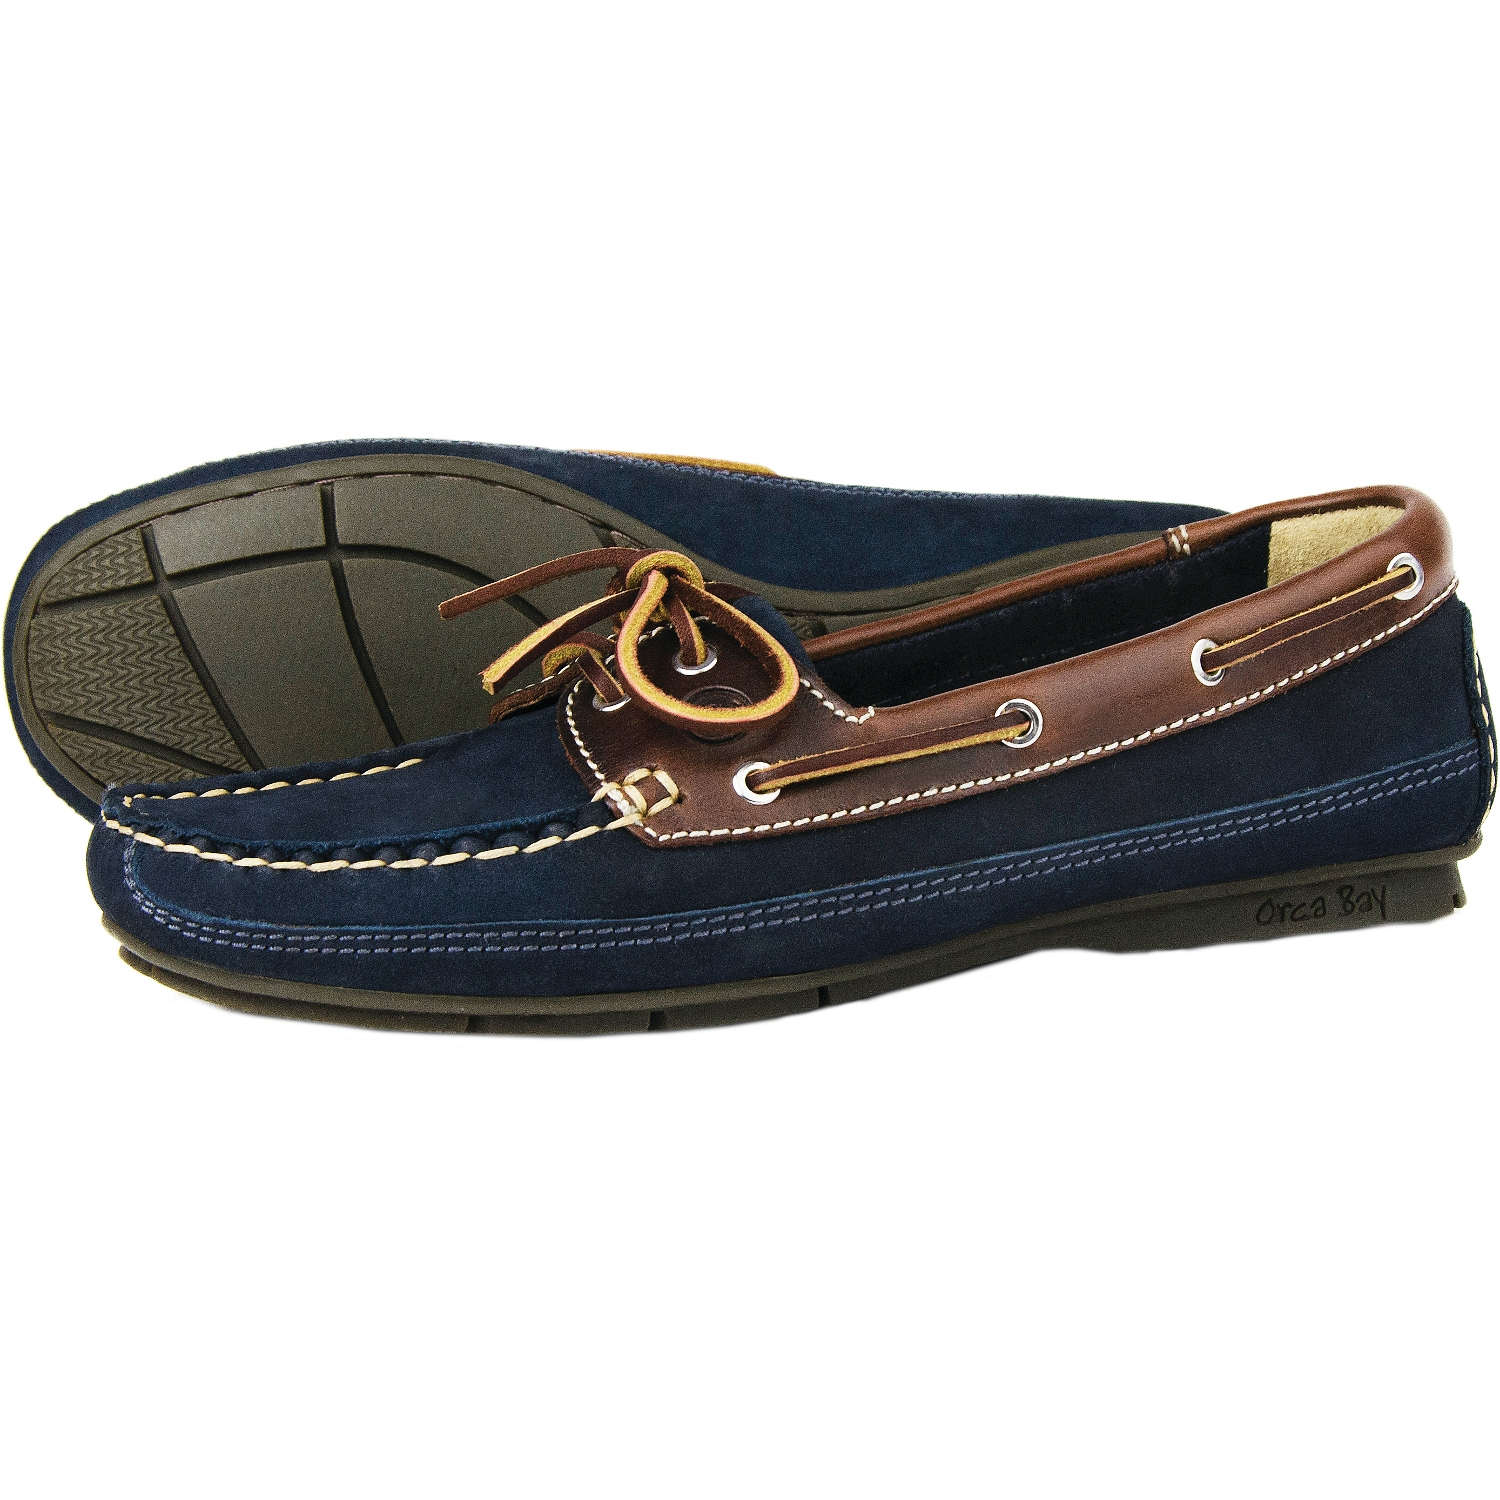 51ff9b79d7556 Orca Bay Ladies Bahamas Boat Shoes Indigo/Saddle